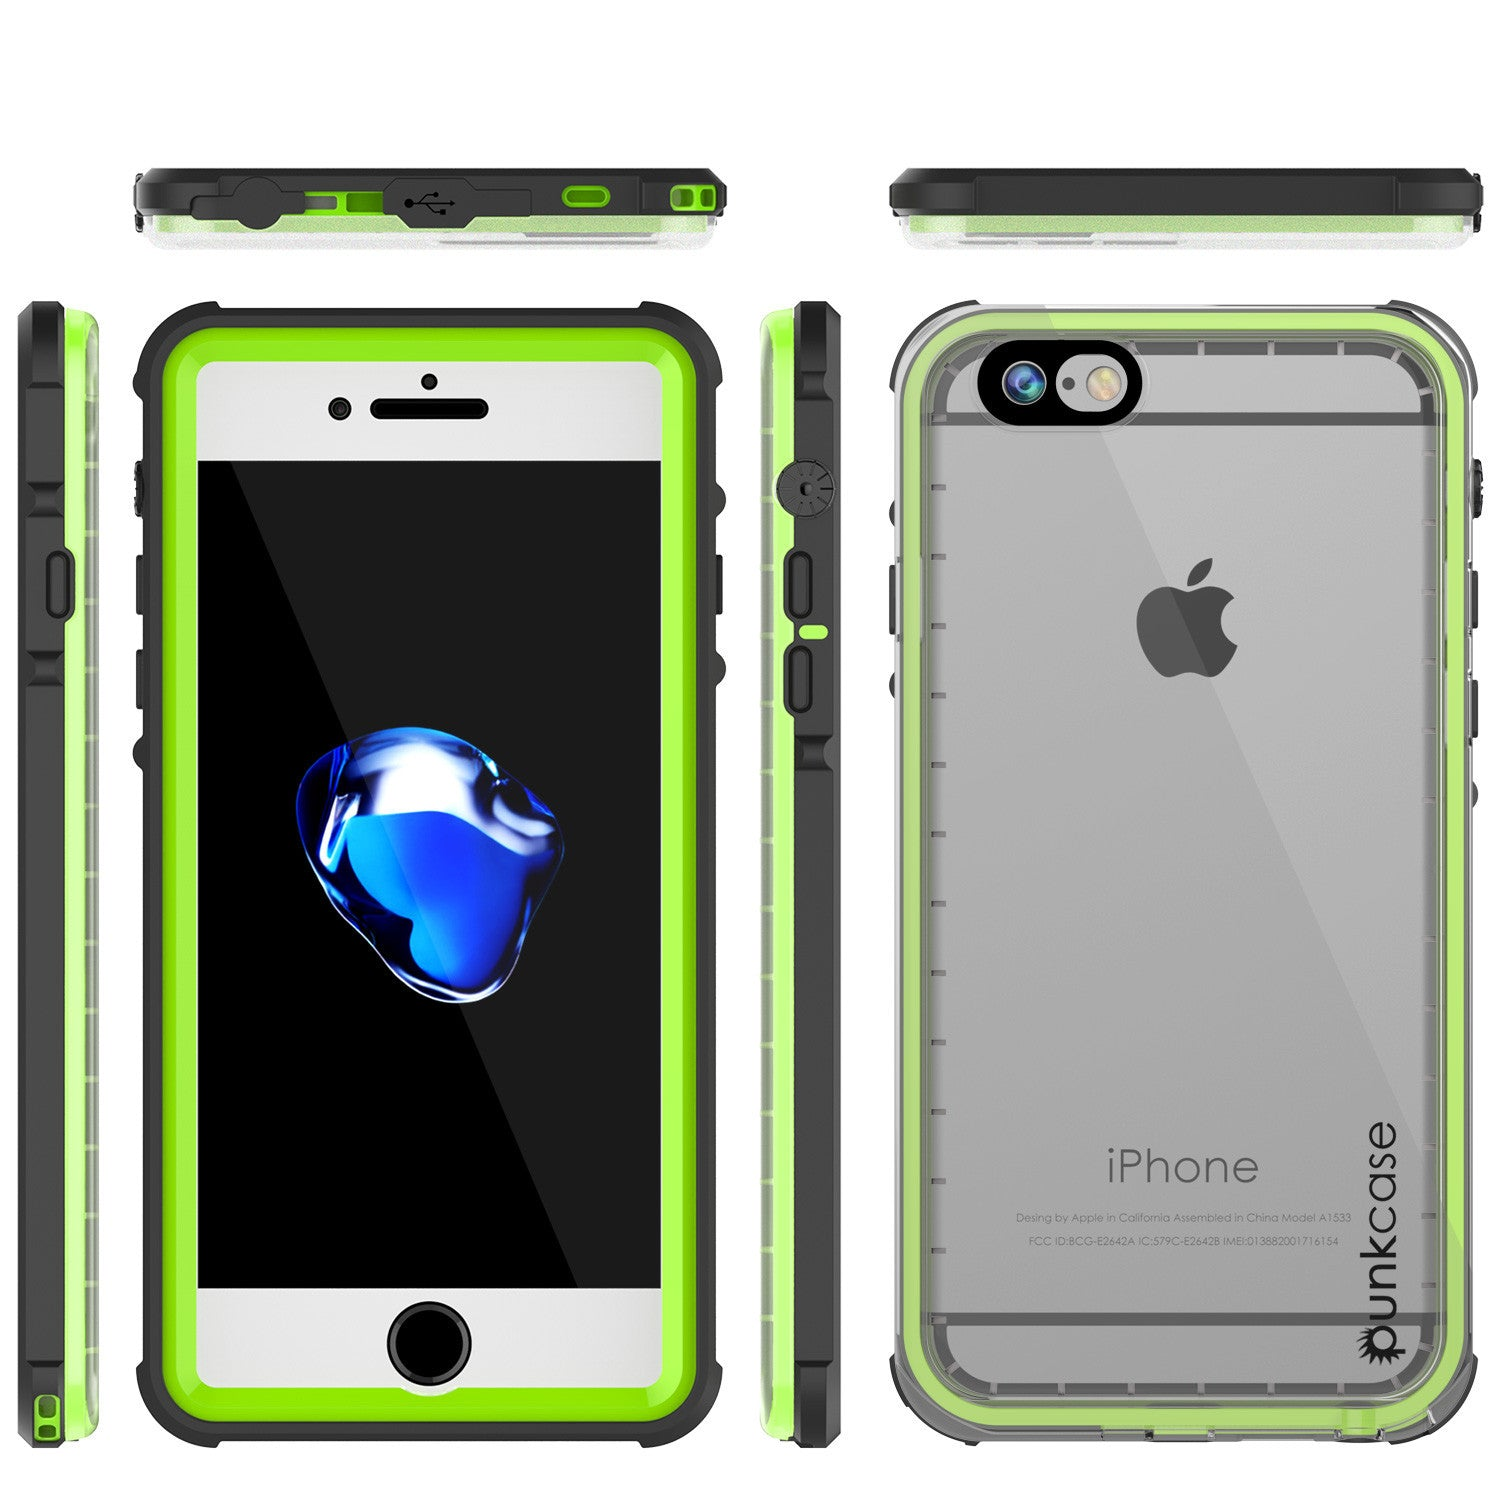 Apple iPhone 7 Waterproof Case, PUNKcase CRYSTAL Light Green  W/ Attached Screen Protector  | Warranty